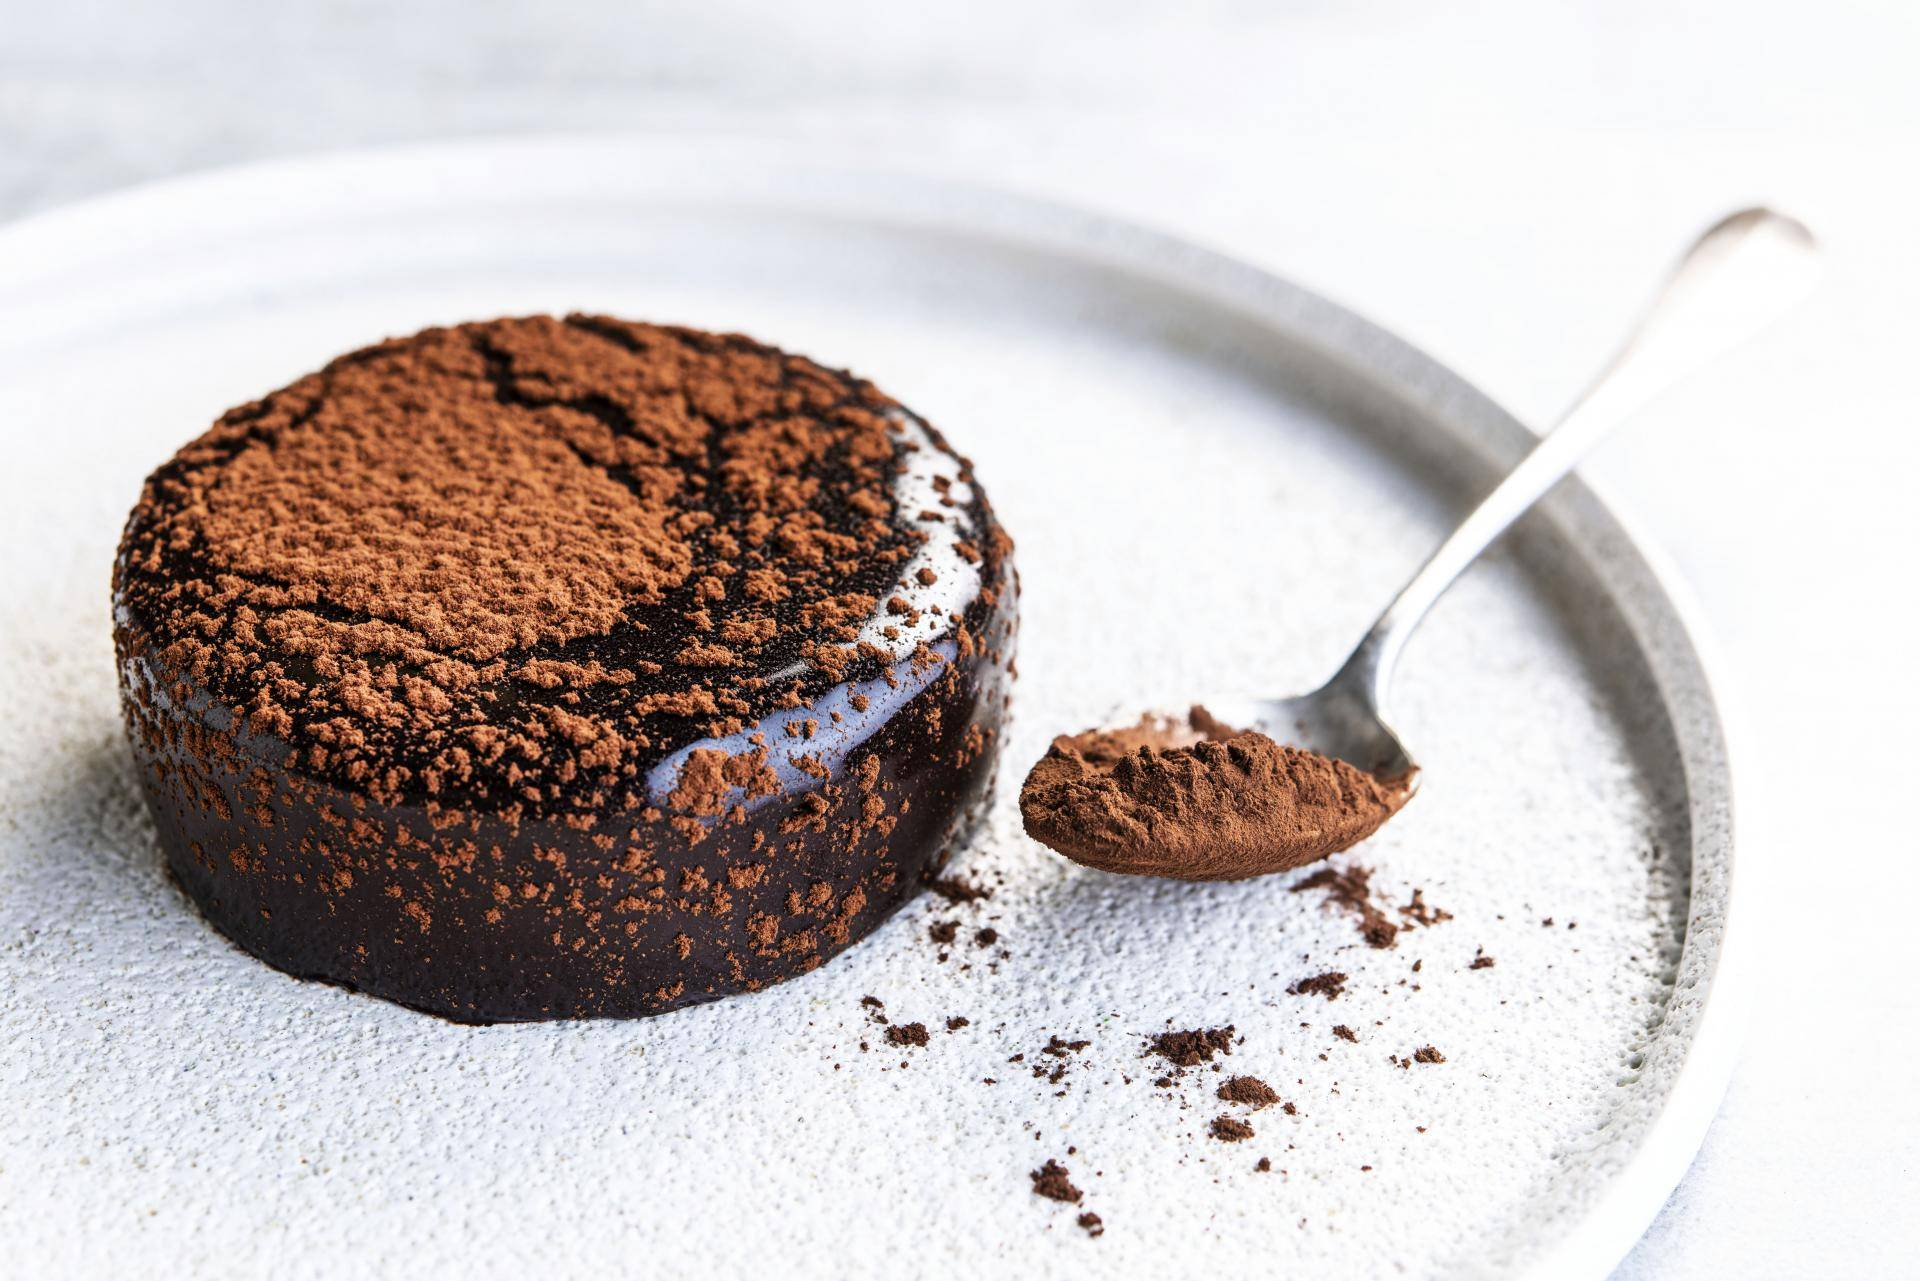 Lenotre made with Organic Dark Chocolate powder and Dusting cocoa powder